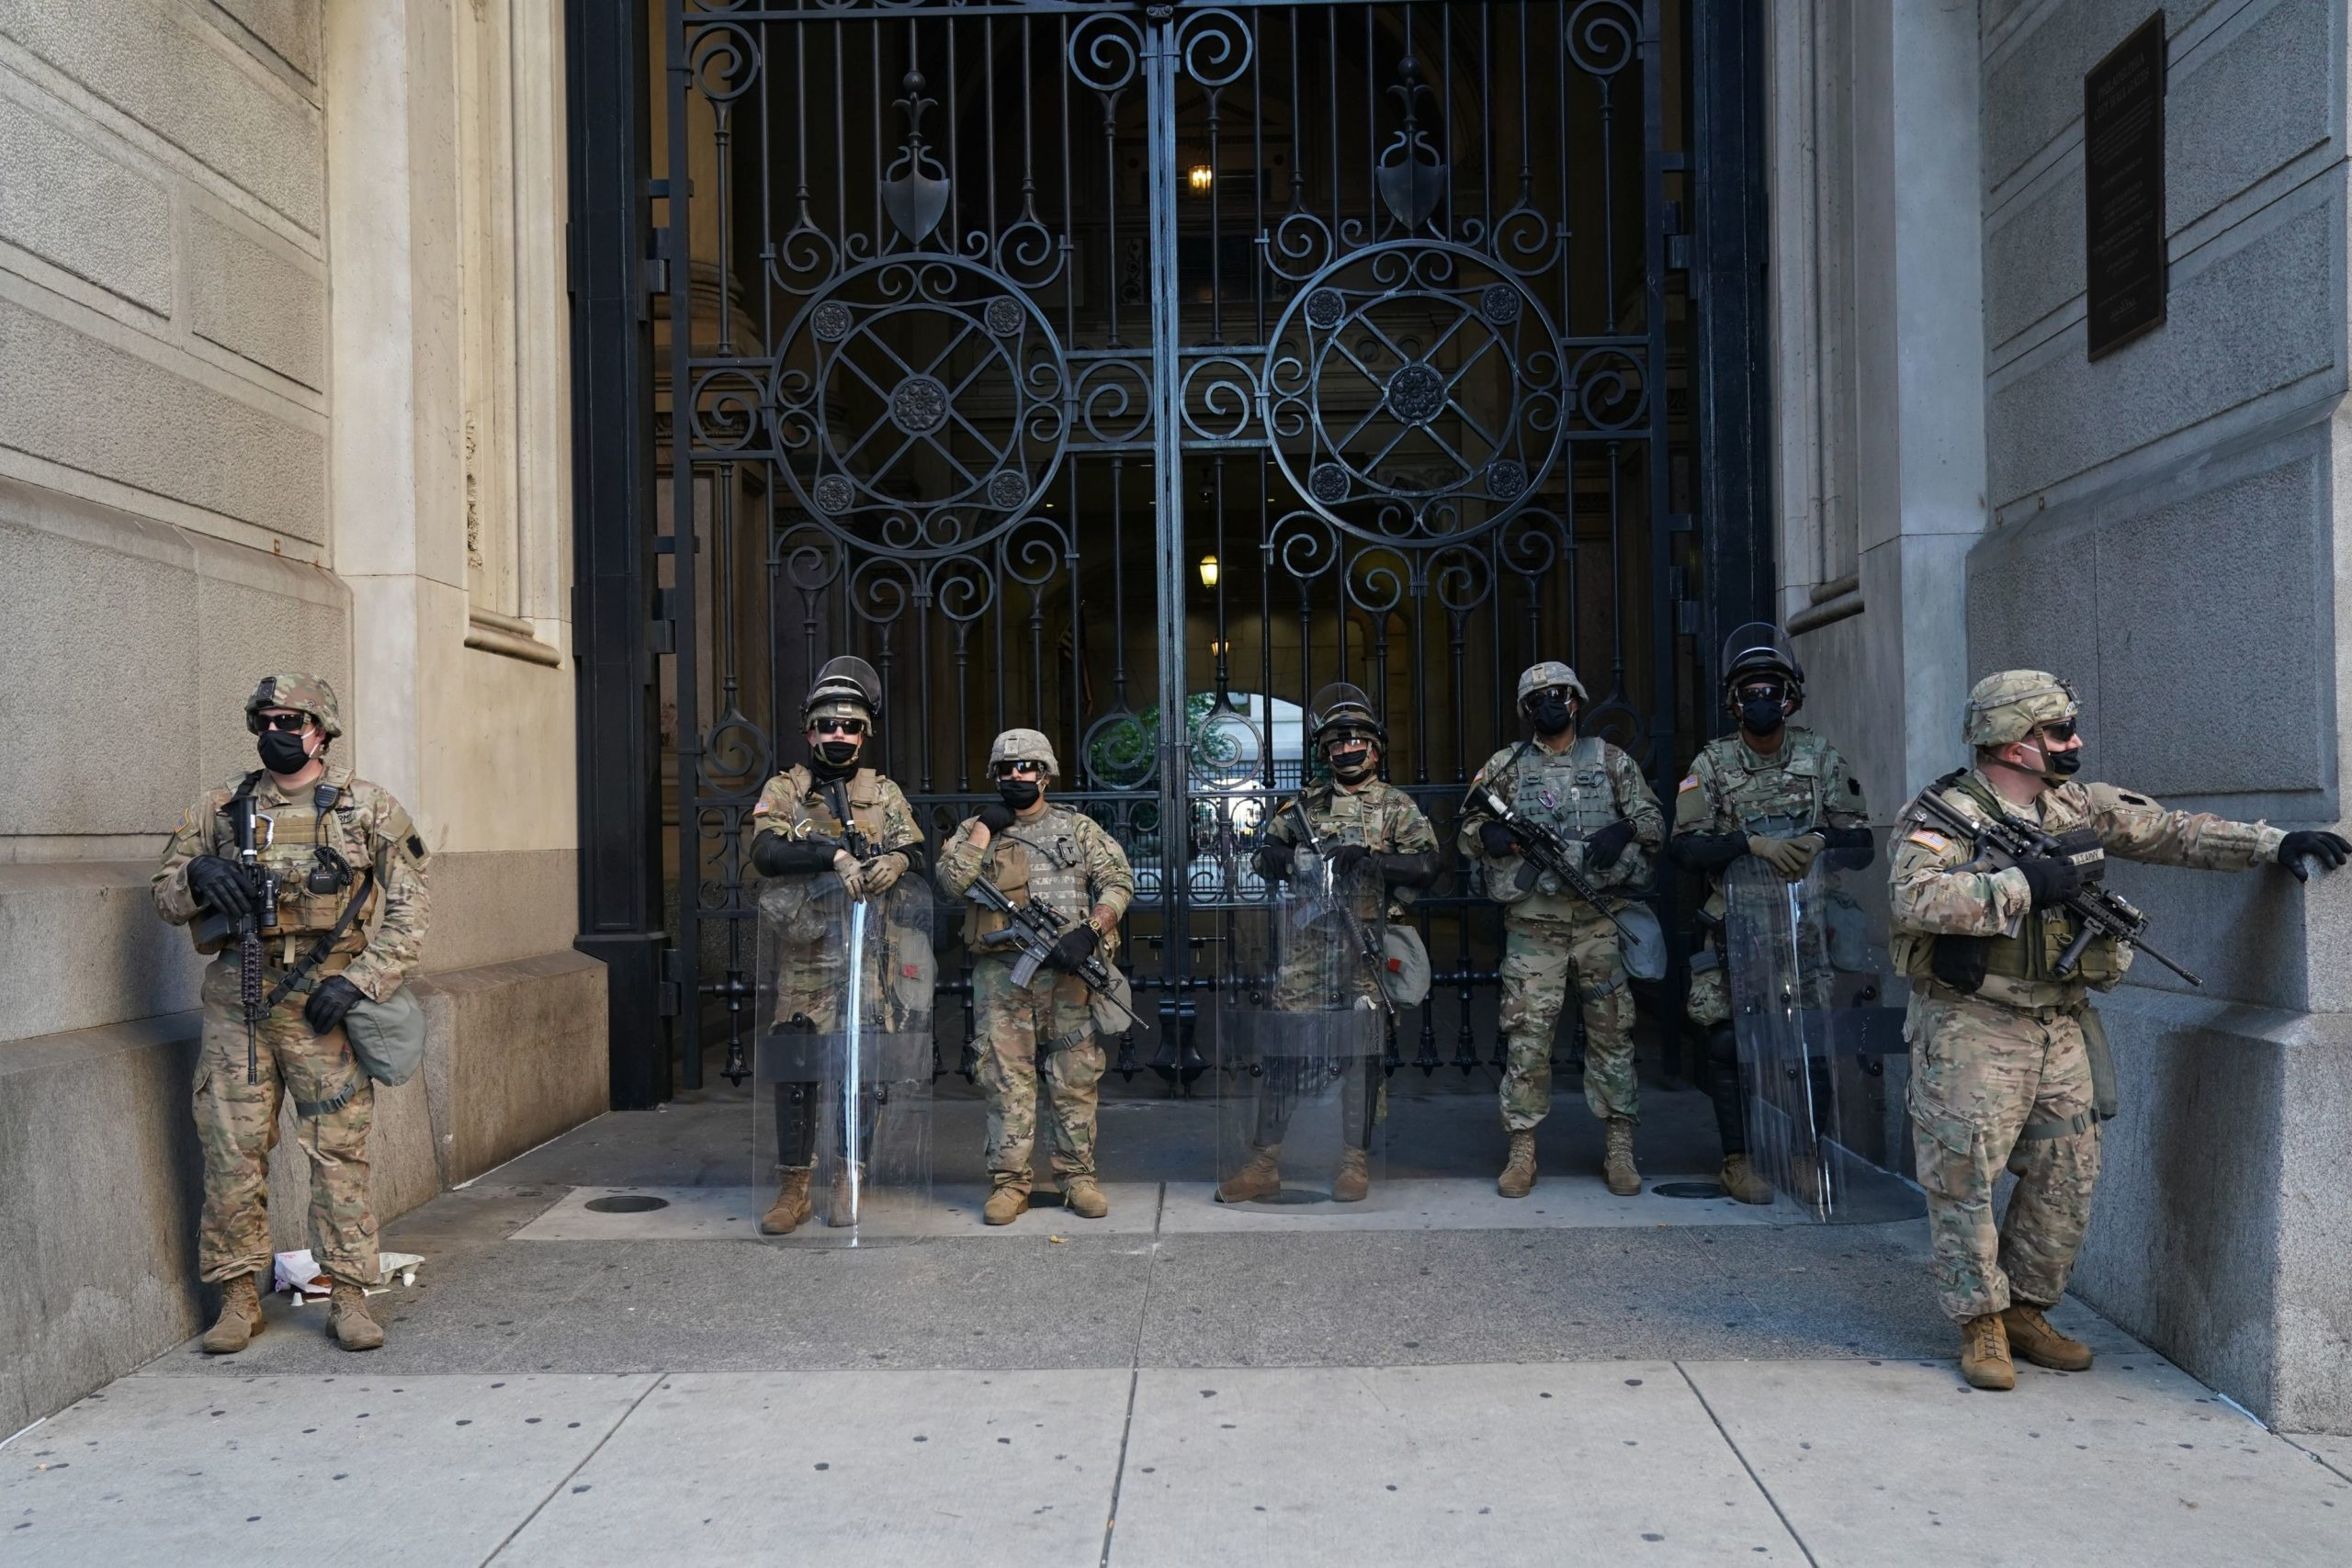 US Army National Guard troops stand outside City Hall after Joe Biden was declared winner of the 2020 presidential election on November 7, 2020 in Philadelphia, Pennsylvania. - Democrat Joe Biden has won the White House, US media said November 7, defeating Donald Trump and ending a presidency that convulsed American politics, shocked the world and left the United States more divided than at any time in decades. (Photo by BRYAN R. SMITH/AFP via Getty Images)